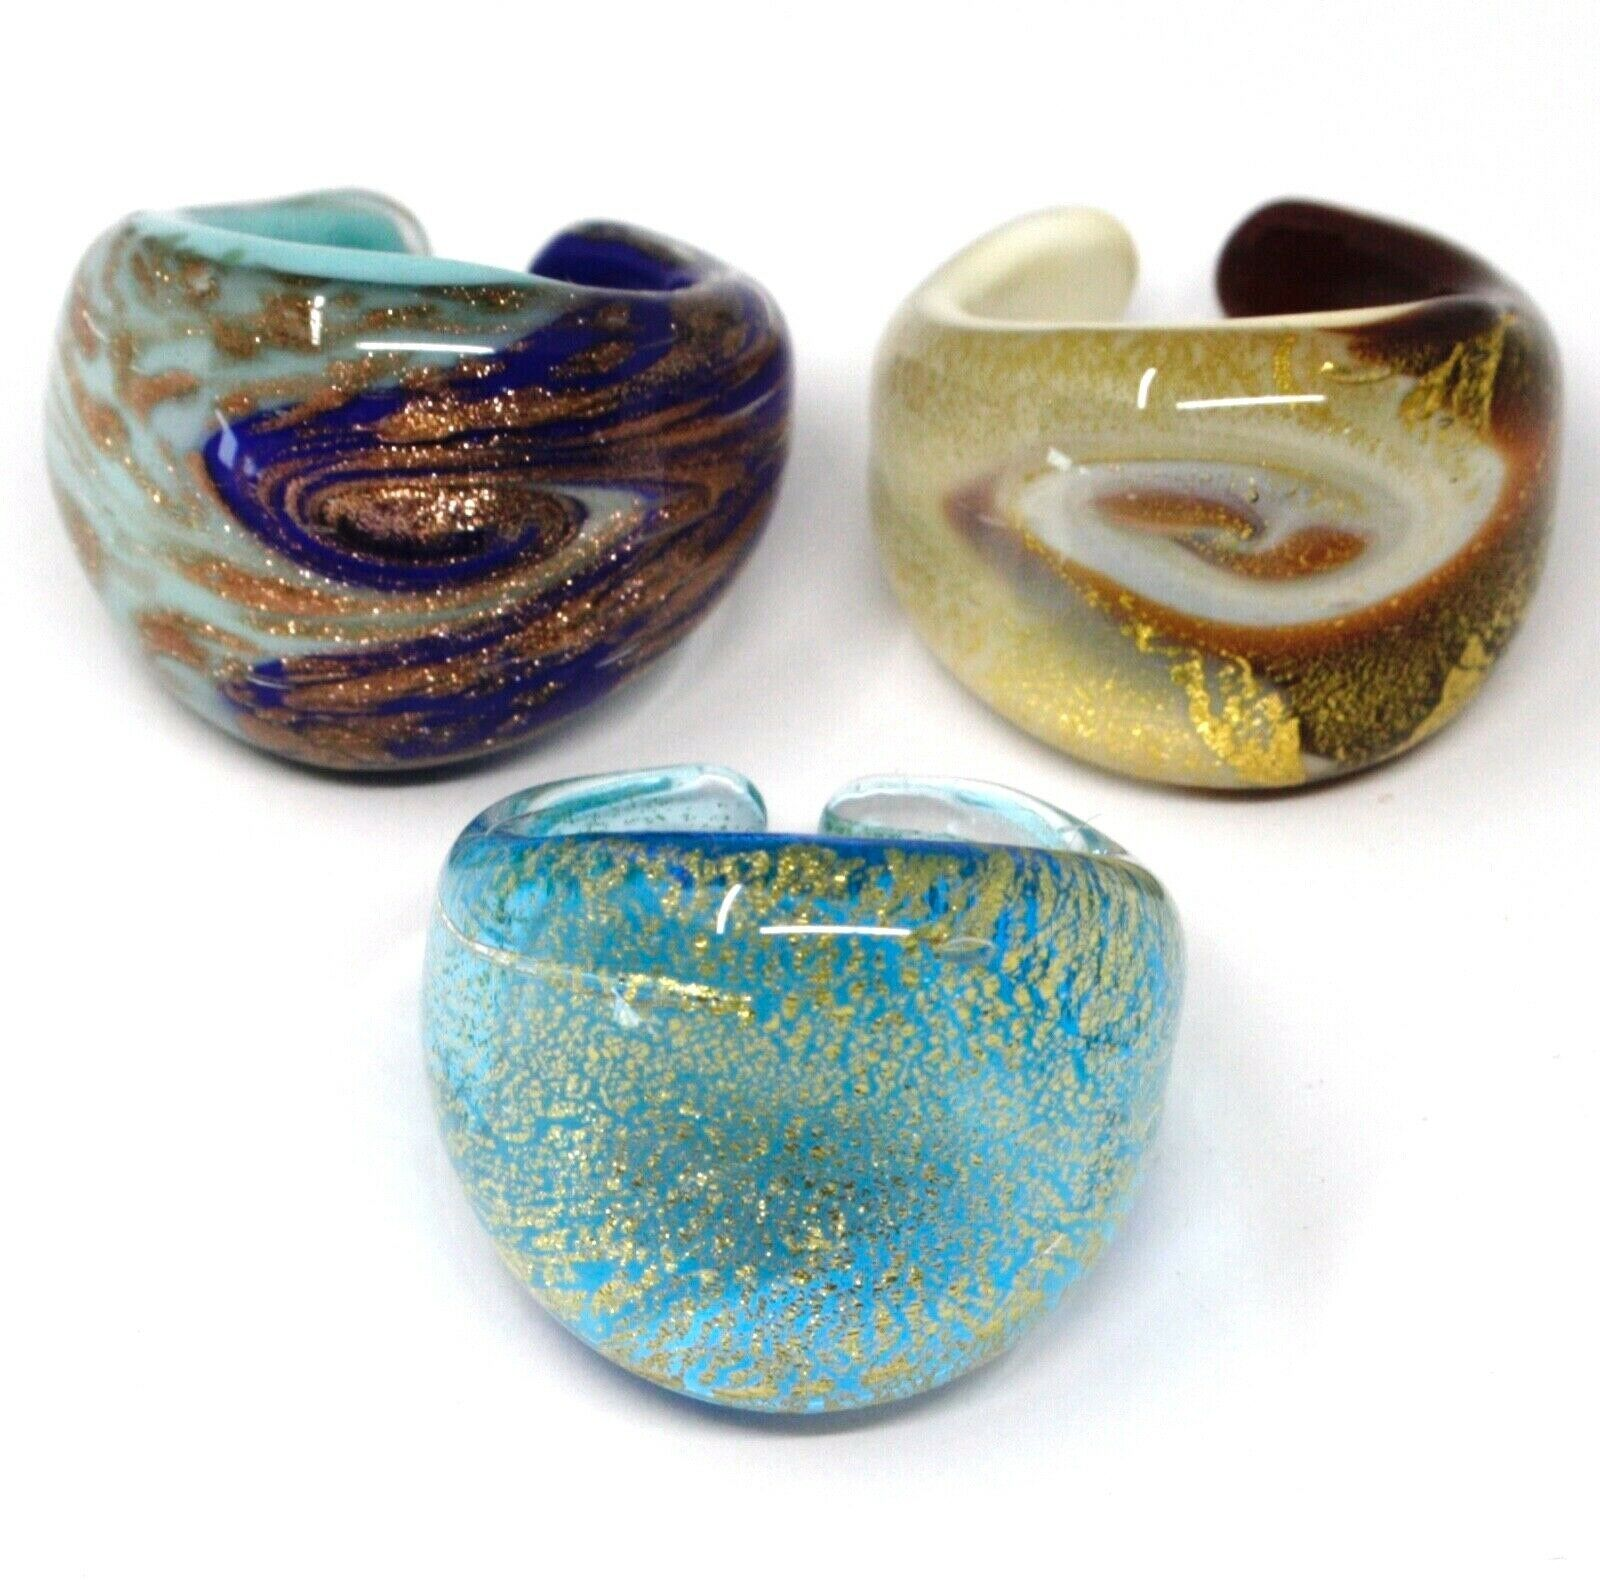 LOT OF 3 ANTICA MURRINA VENEZIA RINGS, MURANO GLASS, SIZE 6.5